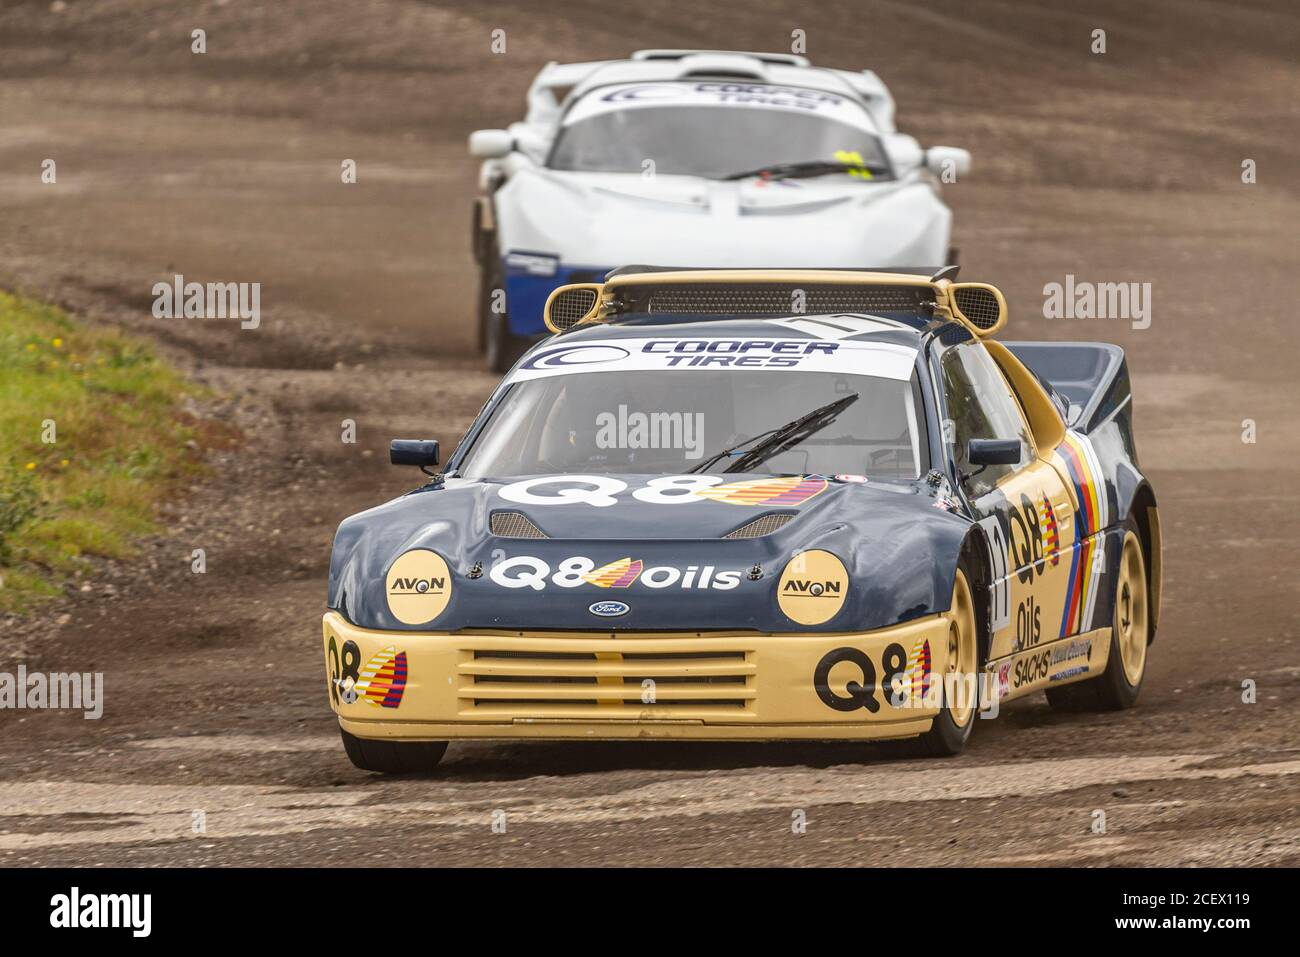 pat-doran-in-ford-rs200-racing-in-the-group-b-class-at-the-5-nations-british-rallycross-event-at-lydden-hill-kent-uk-during-covid-19-2CEX119.jpg